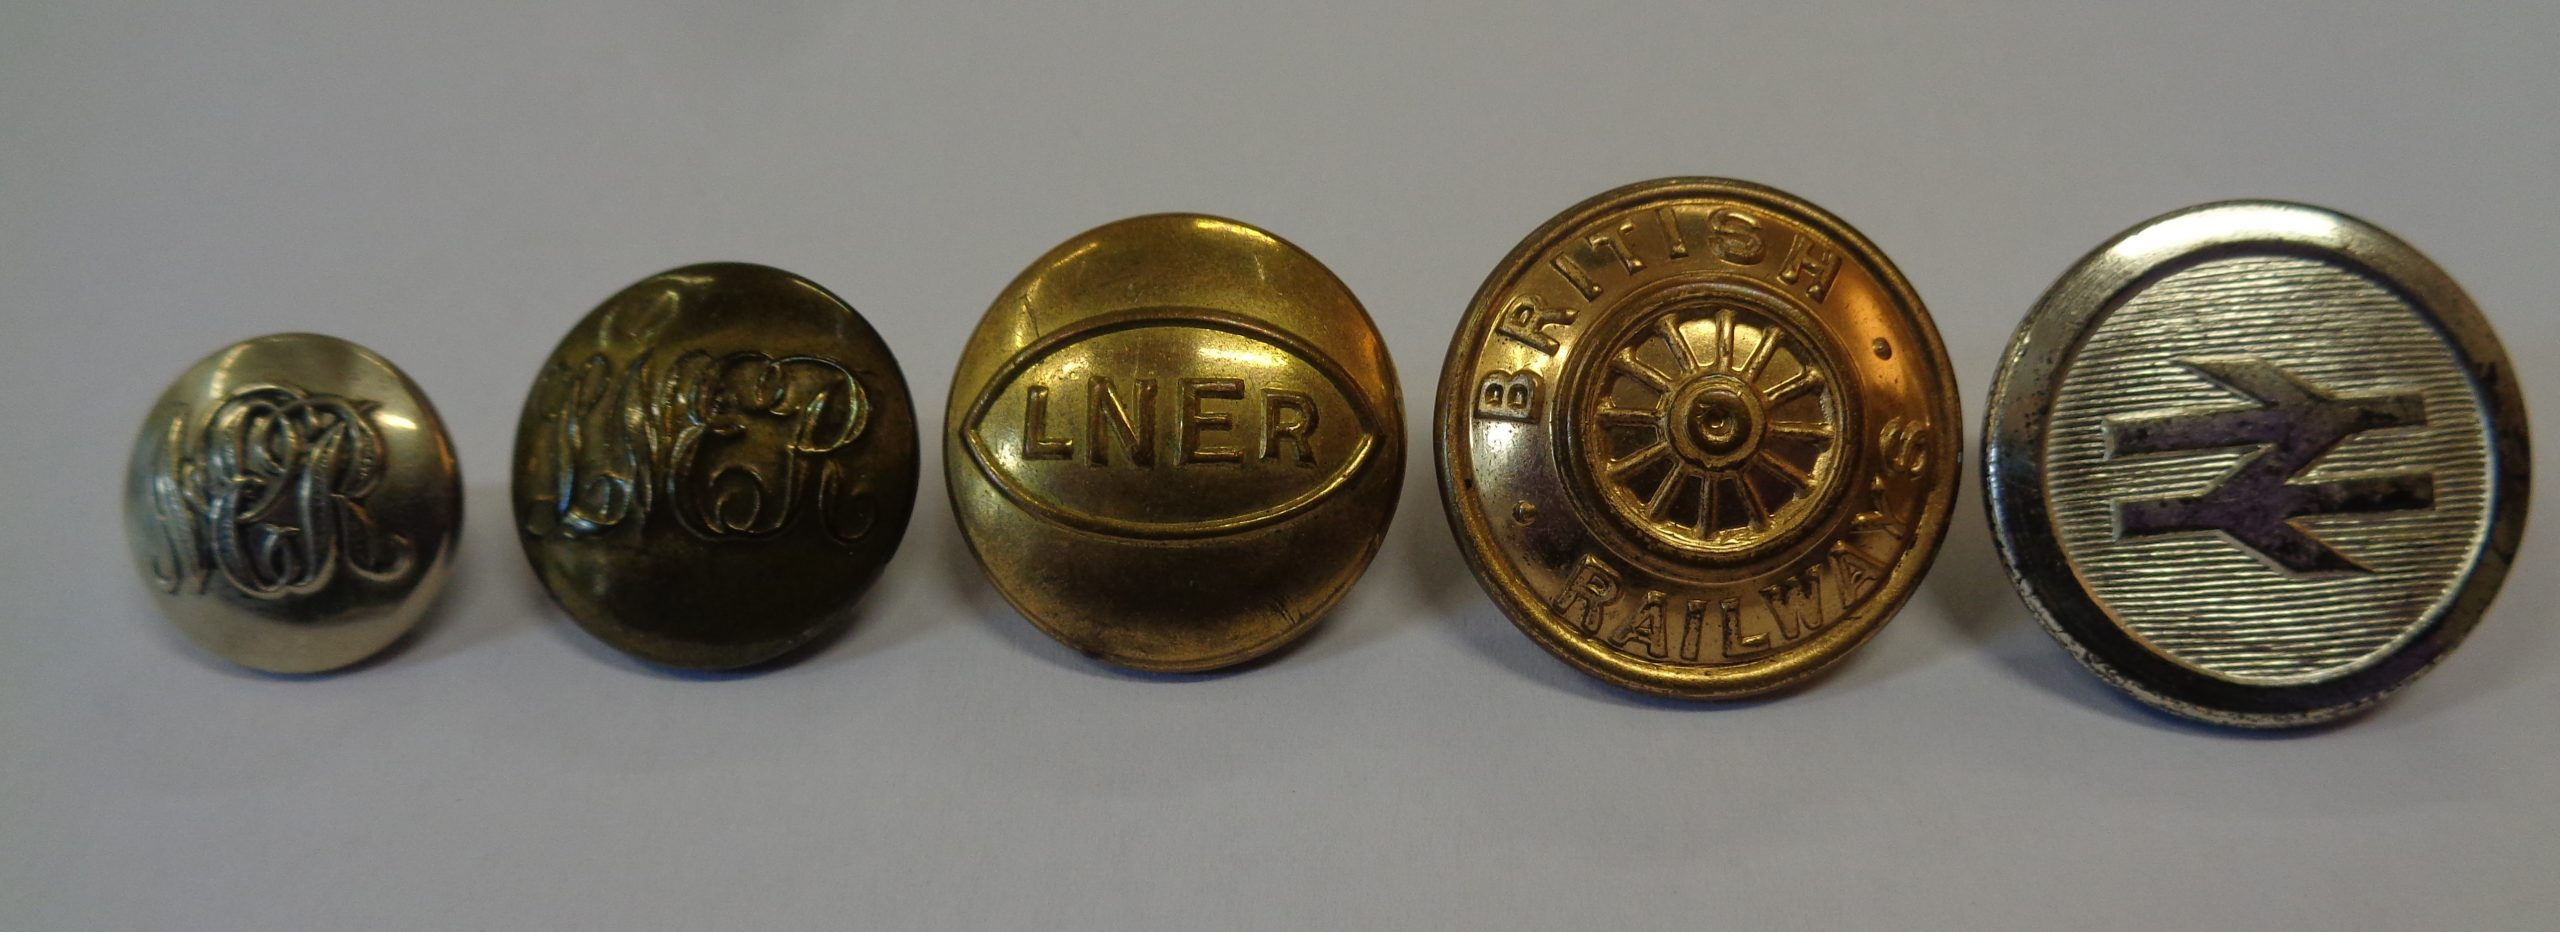 picture showing the evolution of railway uniform buttons. Starting with small gold ones with NER scrawled over them, to larger NER buttons, then to a clear brass button with LNER embossed on and finally the old and new style British Railway buttons